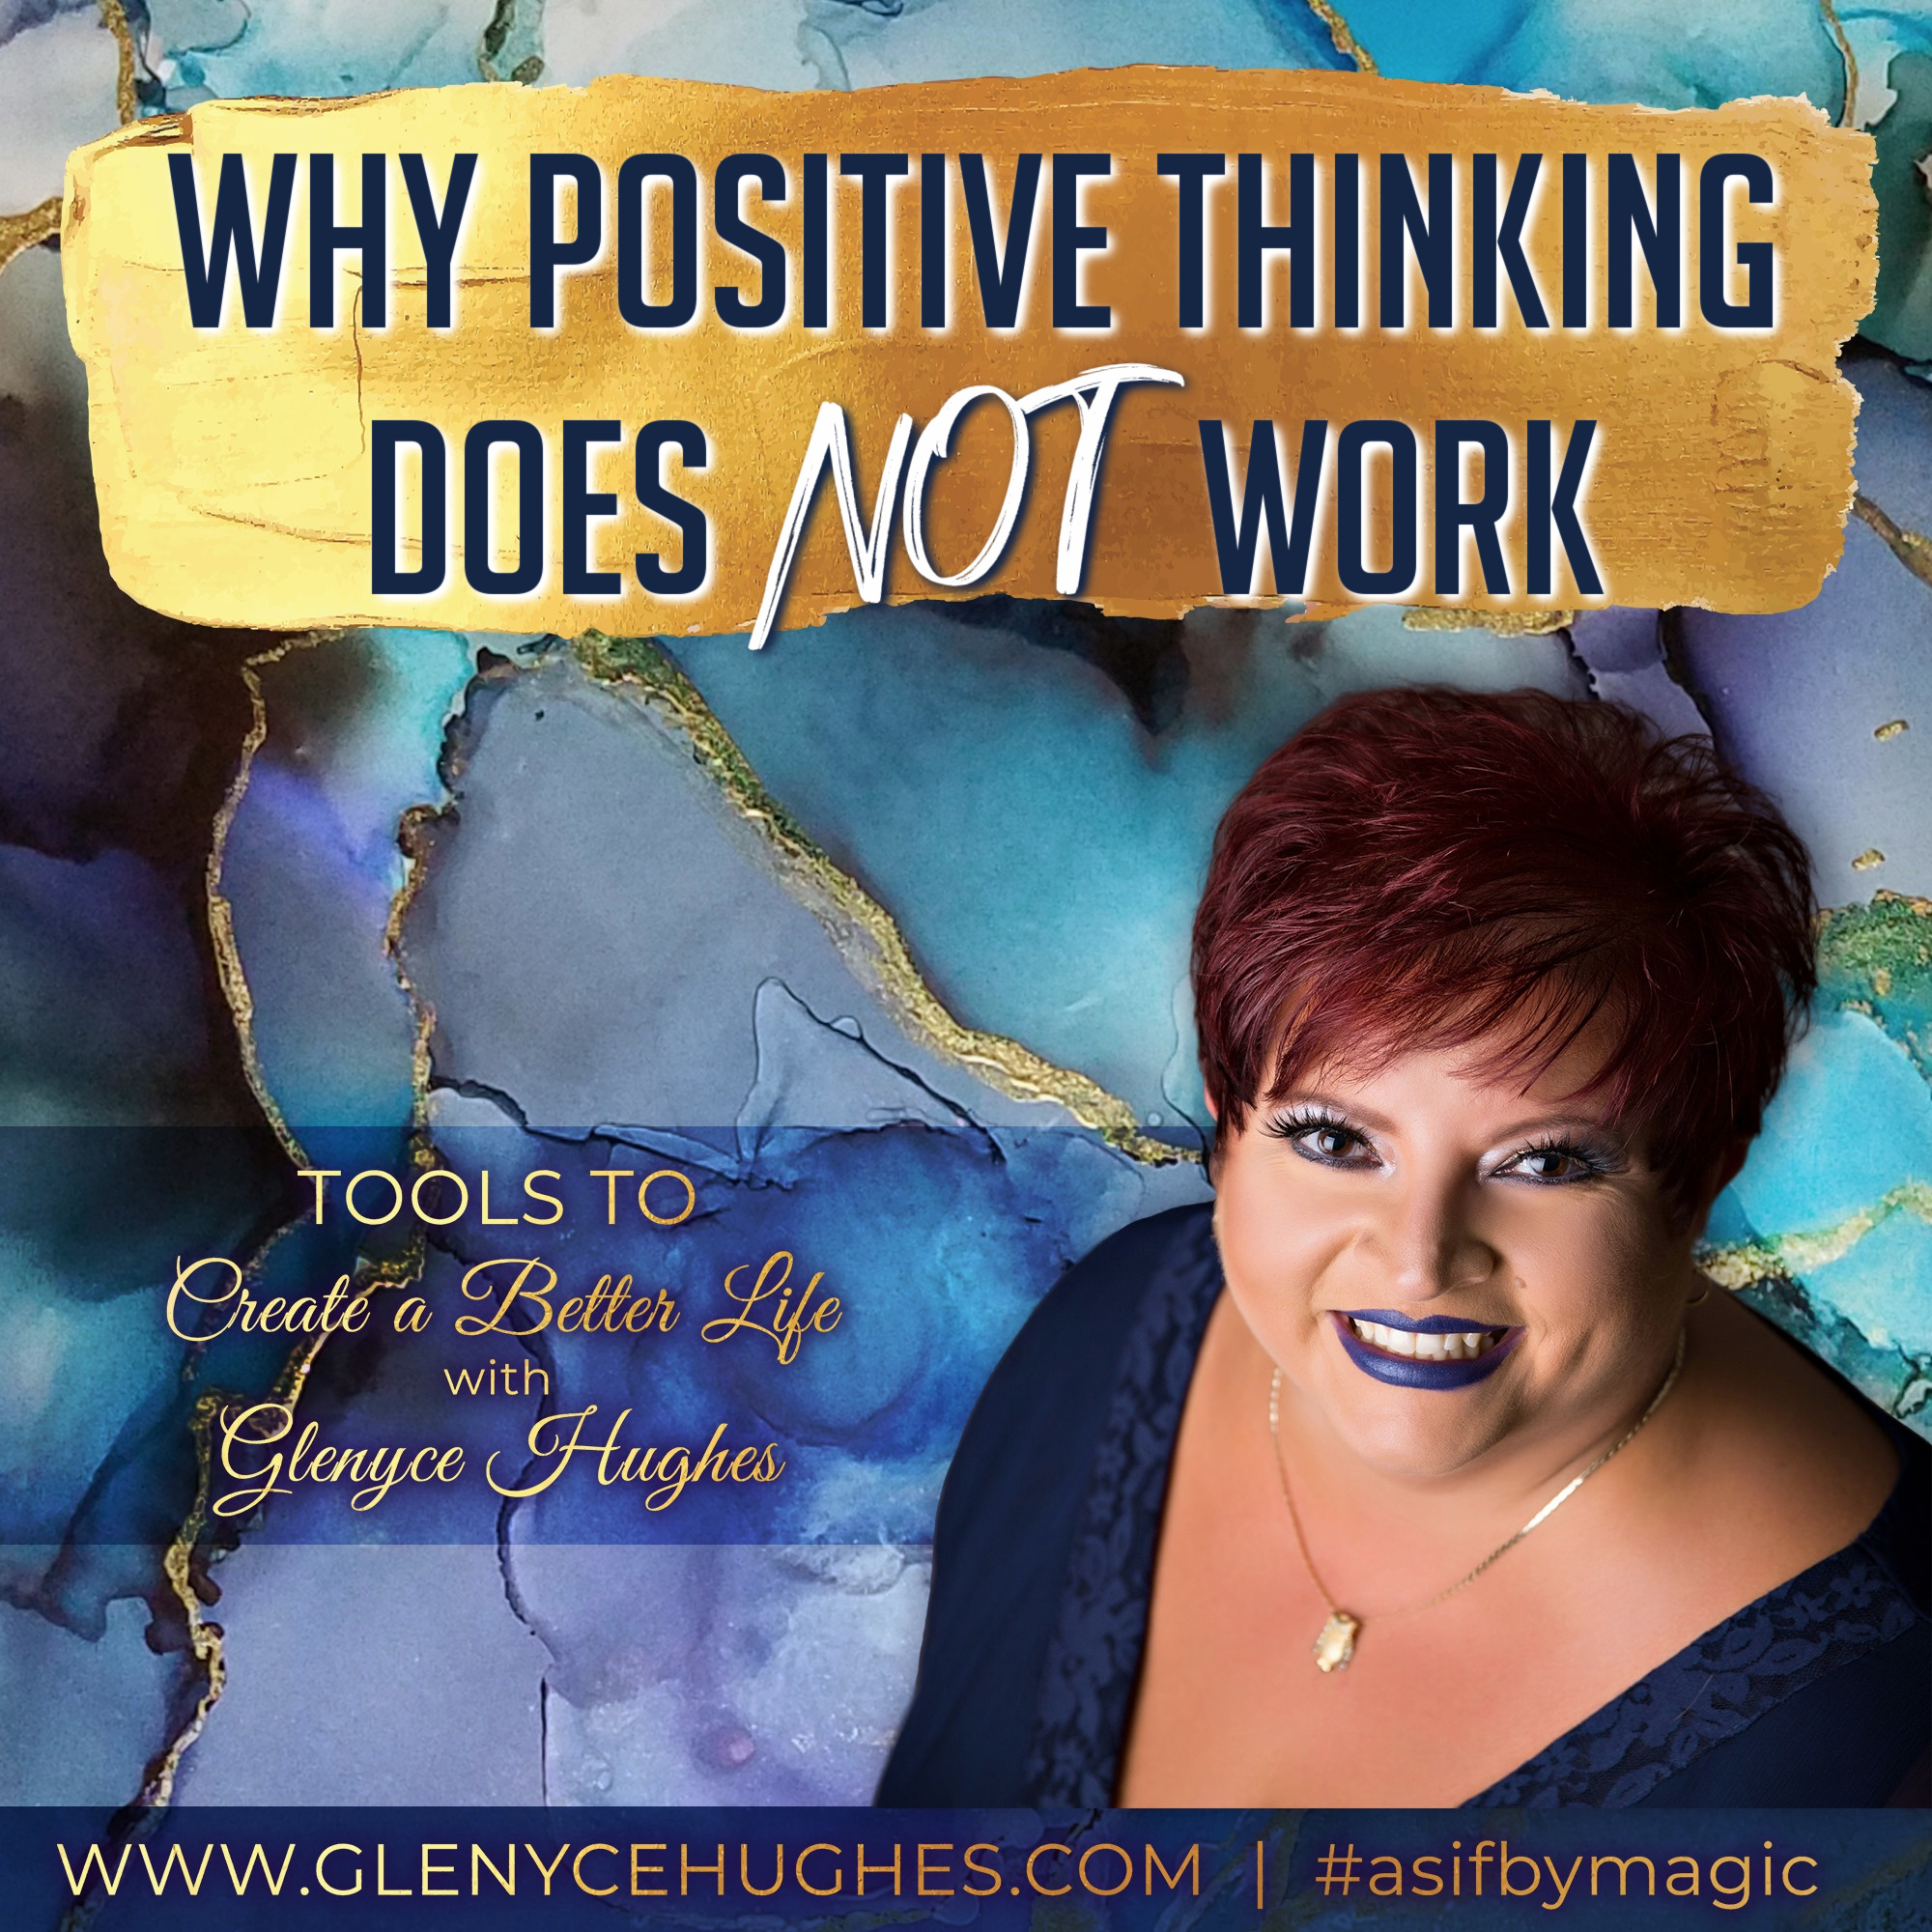 Why Positive Thinking Does Not Work